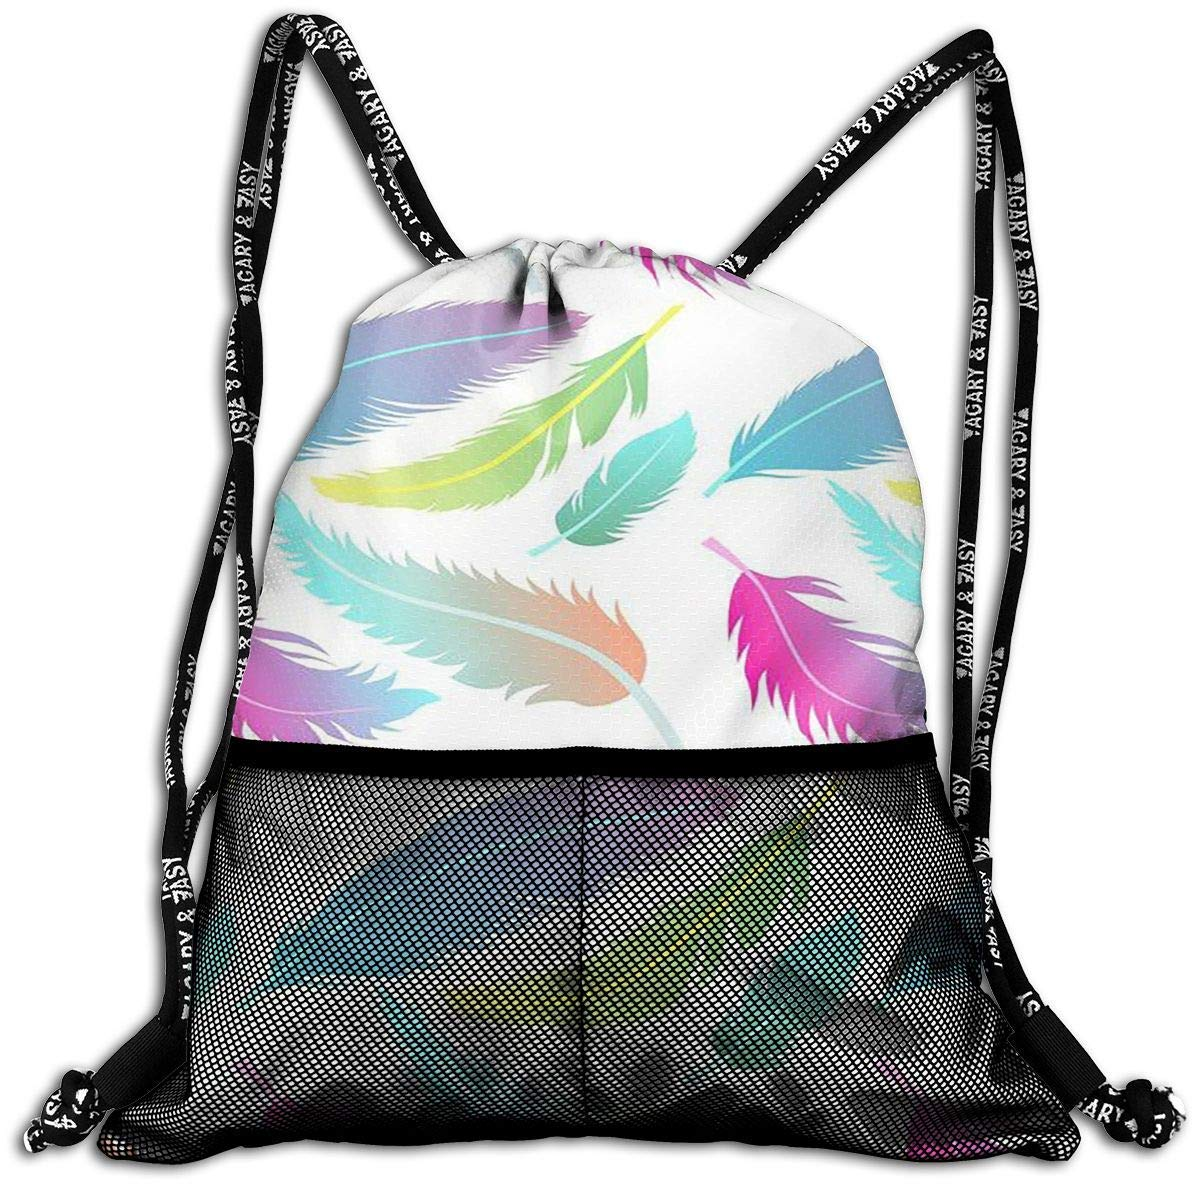 Xukmefat Colorful Feather Durable Sport Drawstring Backpack for School Soccer Yoga